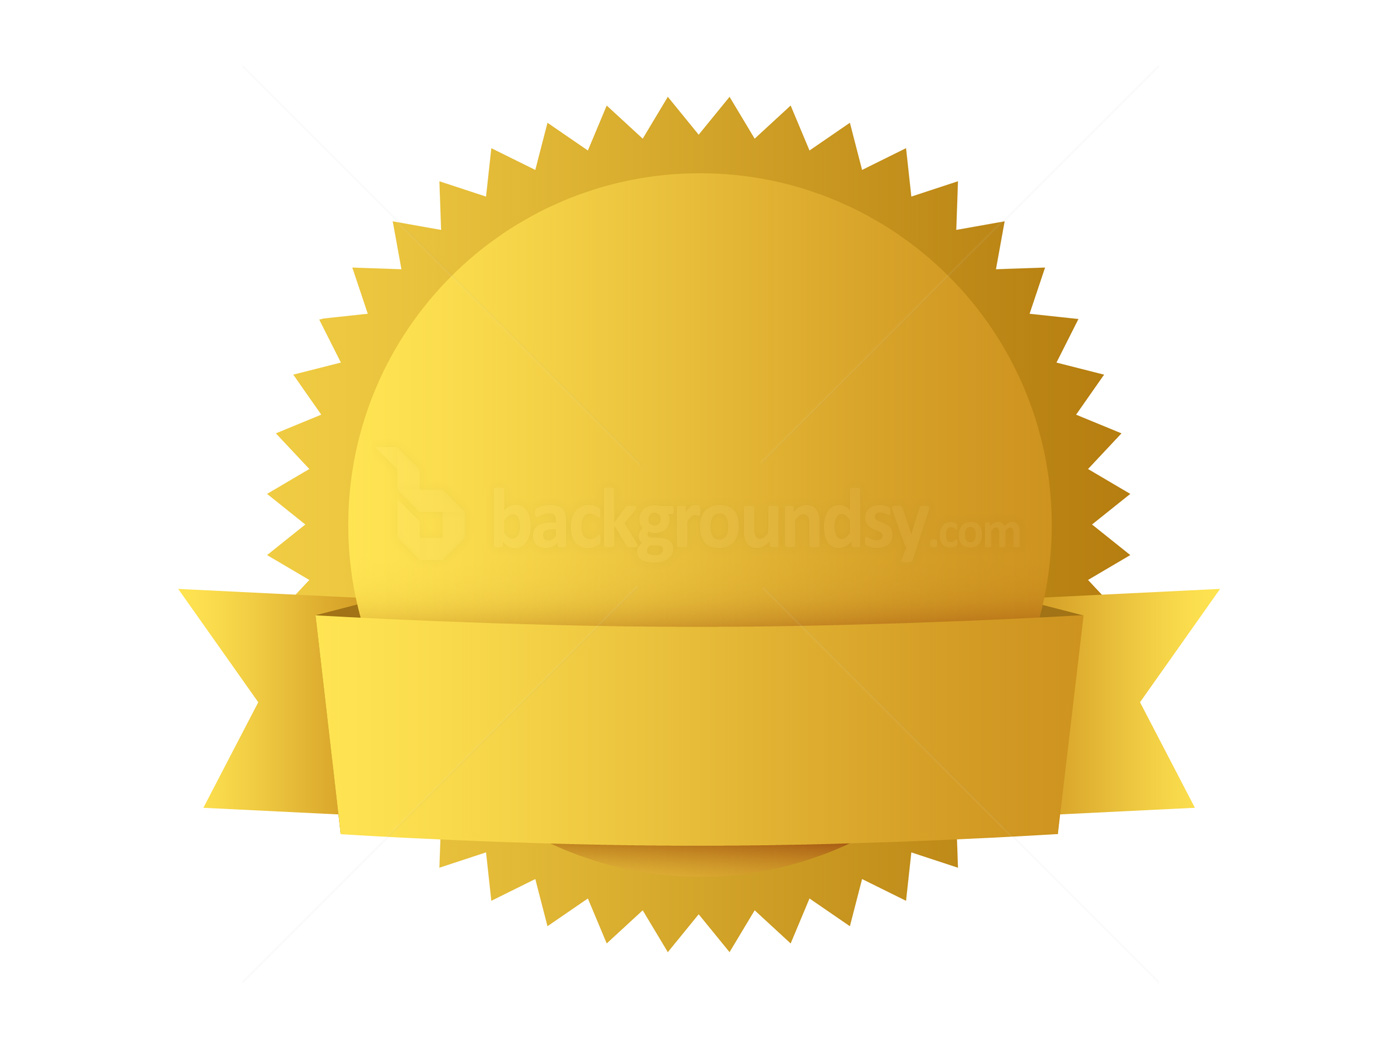 13 Blank Badge Psd Images Blank Seal Templates Blank